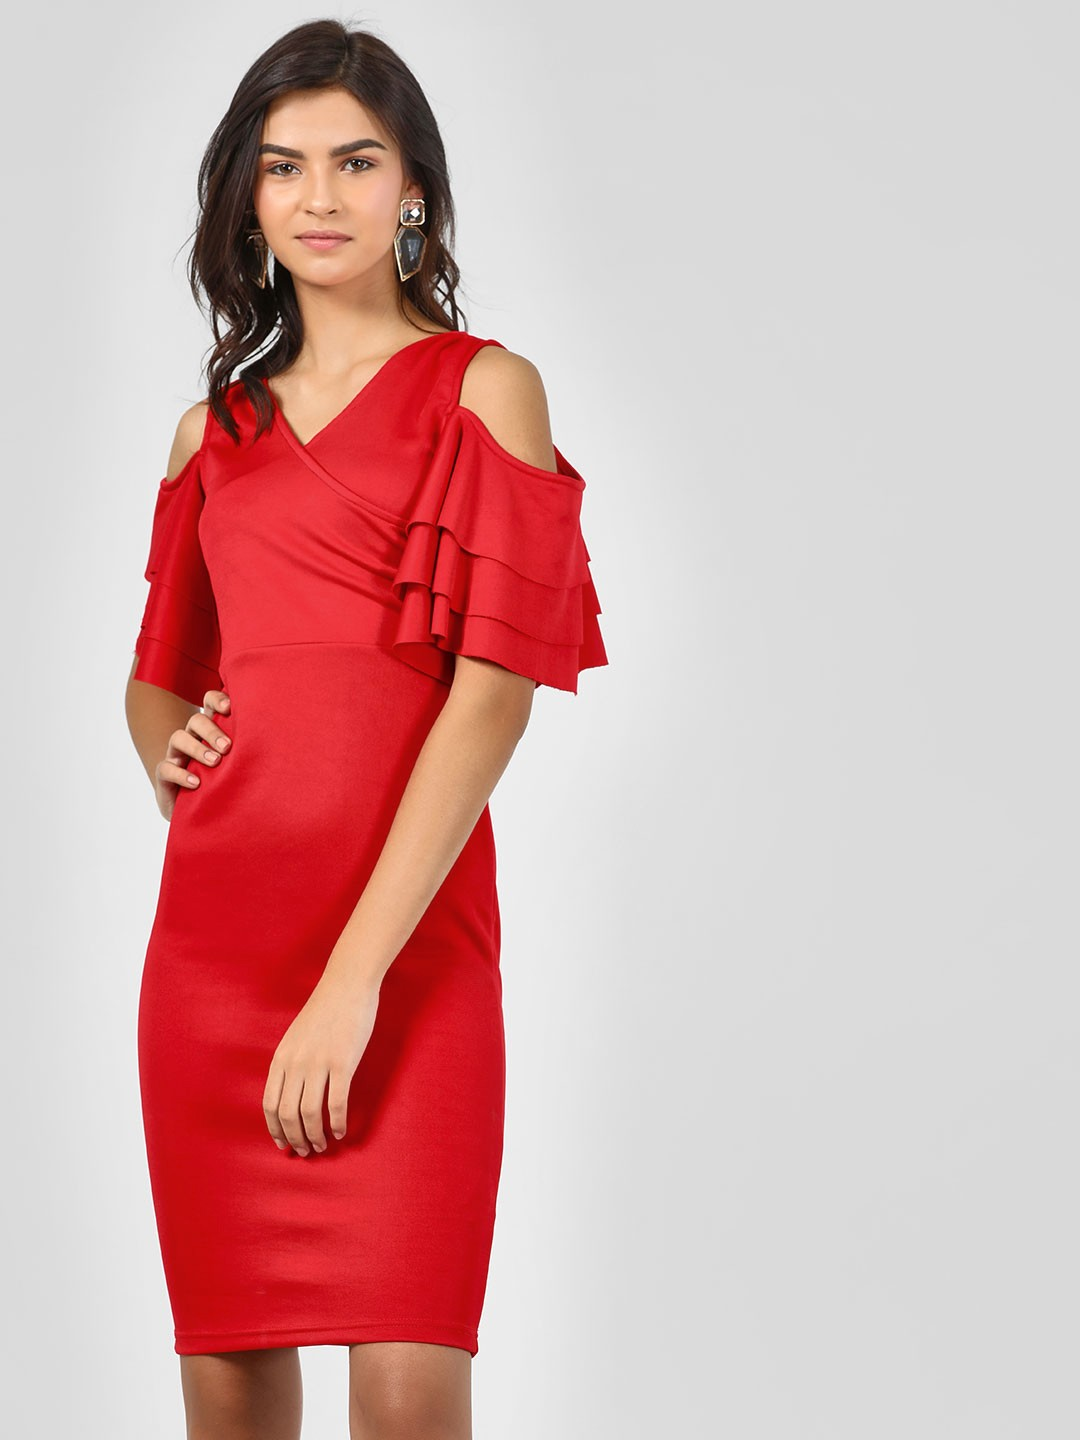 KOOVS Red Bodycon Dress With Ruffled Sleeves 1